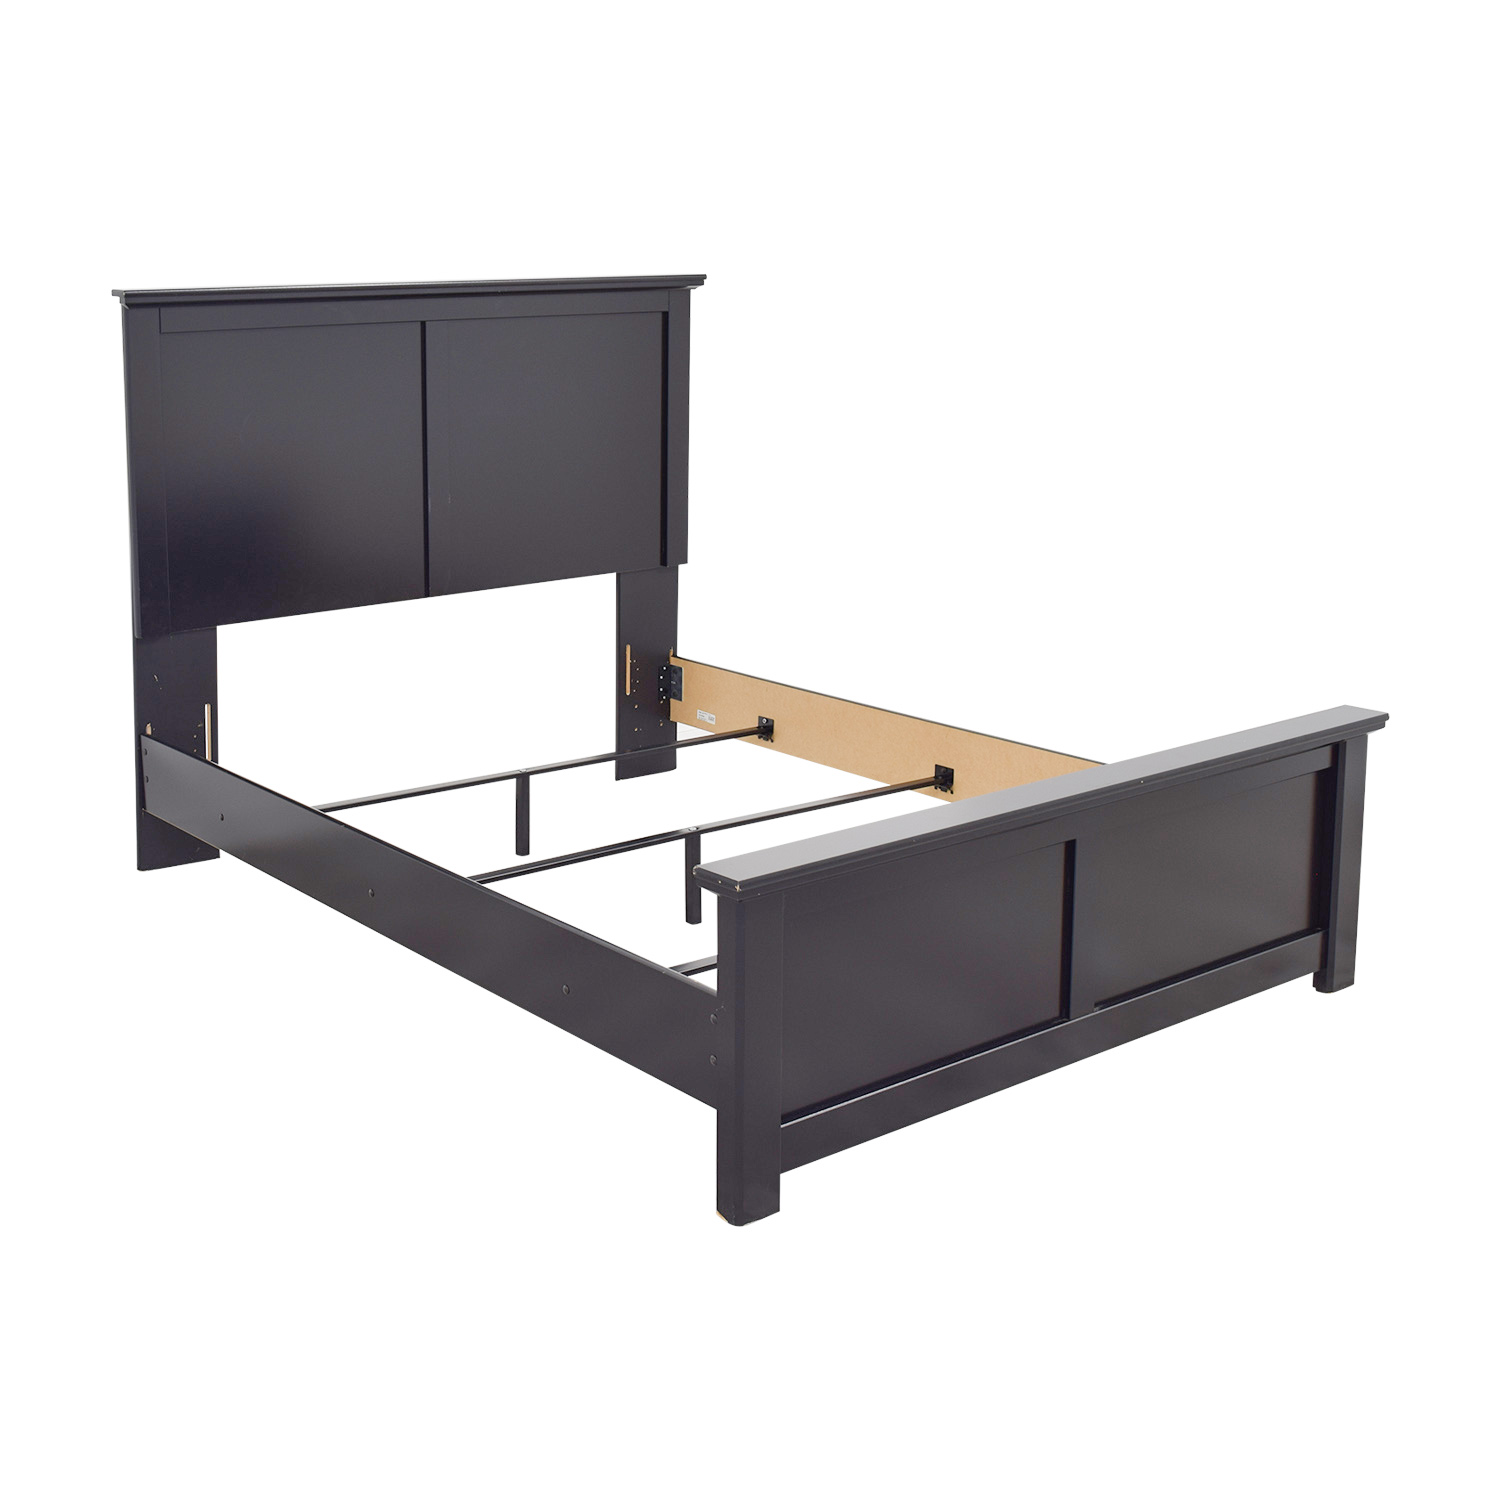 Ashley Furniture Ashley Furniture Black Queen Panel Bed for sale